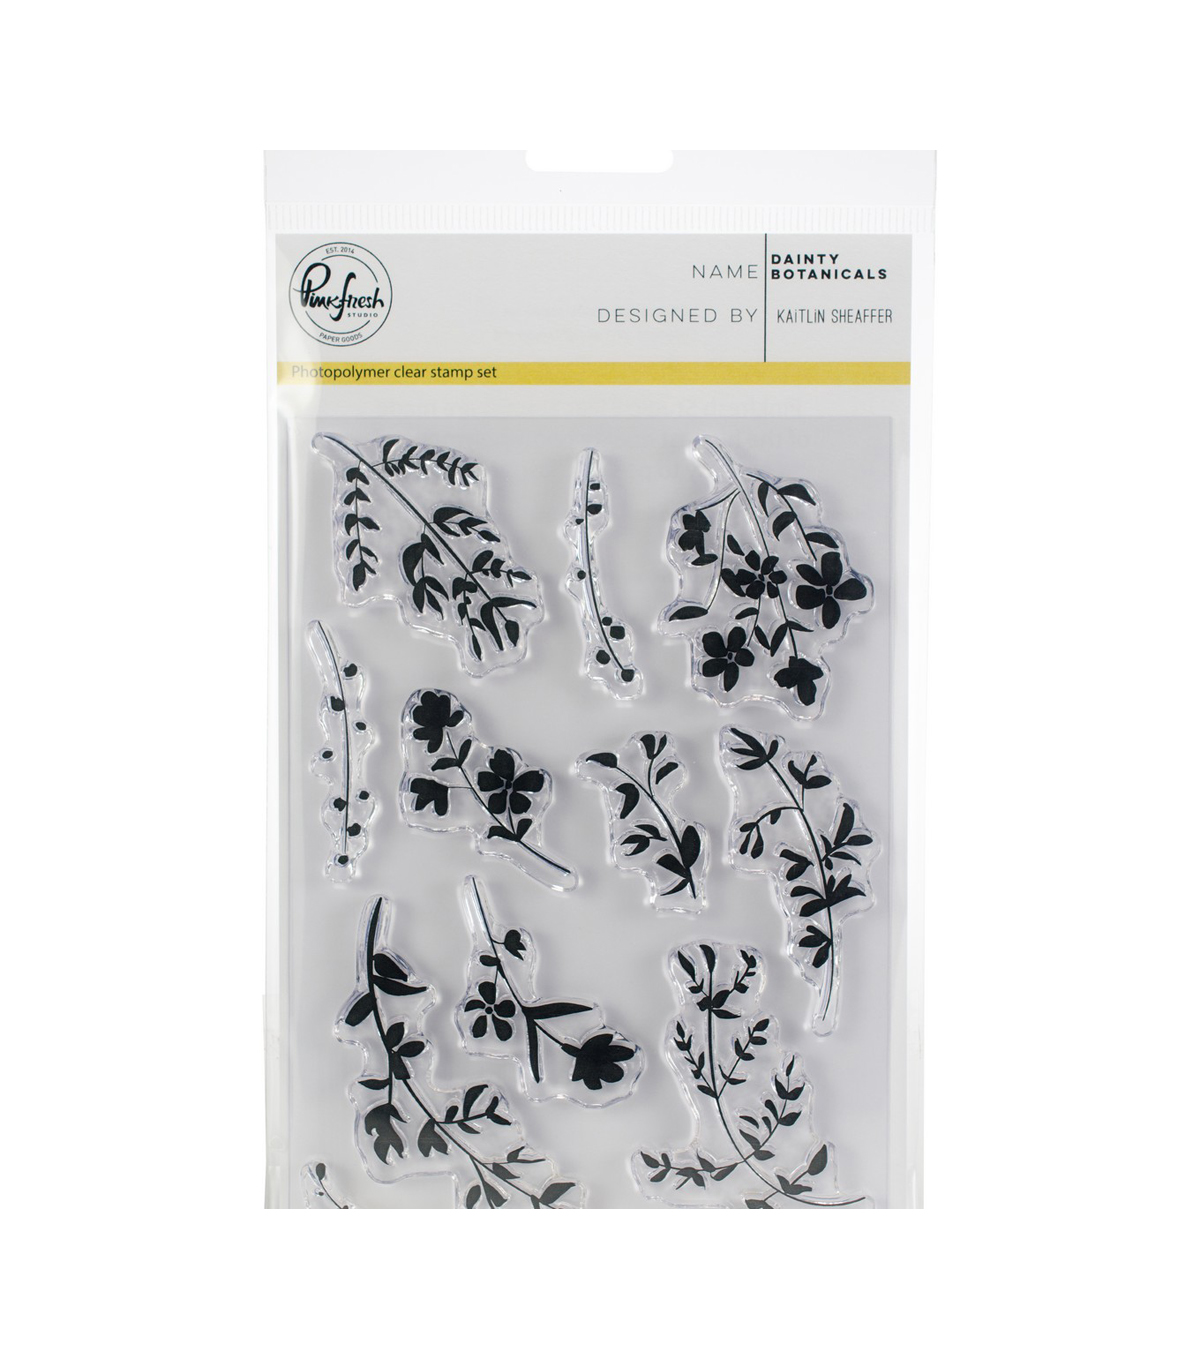 Pinkfresh Studio Clear Stamp Set 4\u0022X6\u0022-Dainty Botanicals